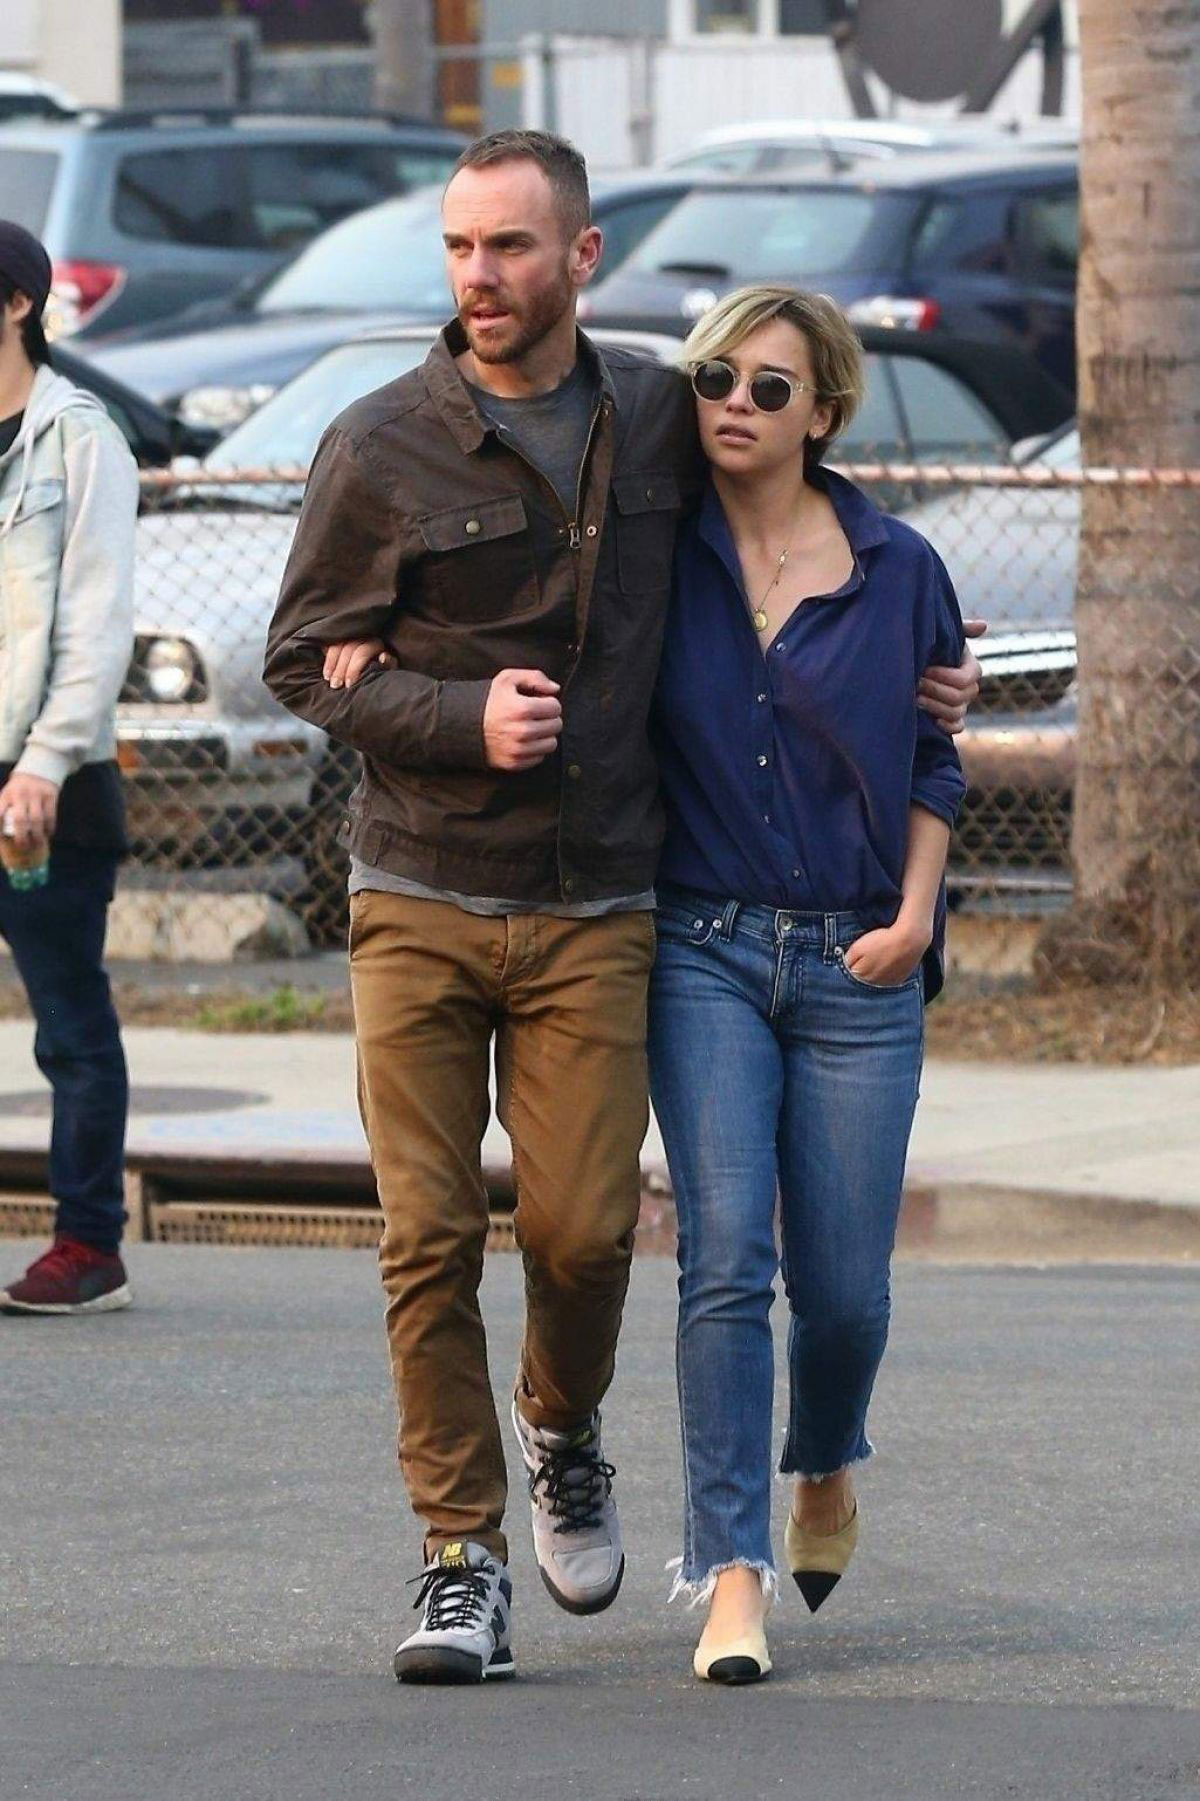 Street Style - Emilia Clarke and her new boyfriend Charlie McDowell Out in Venice Beach - JustFabzz